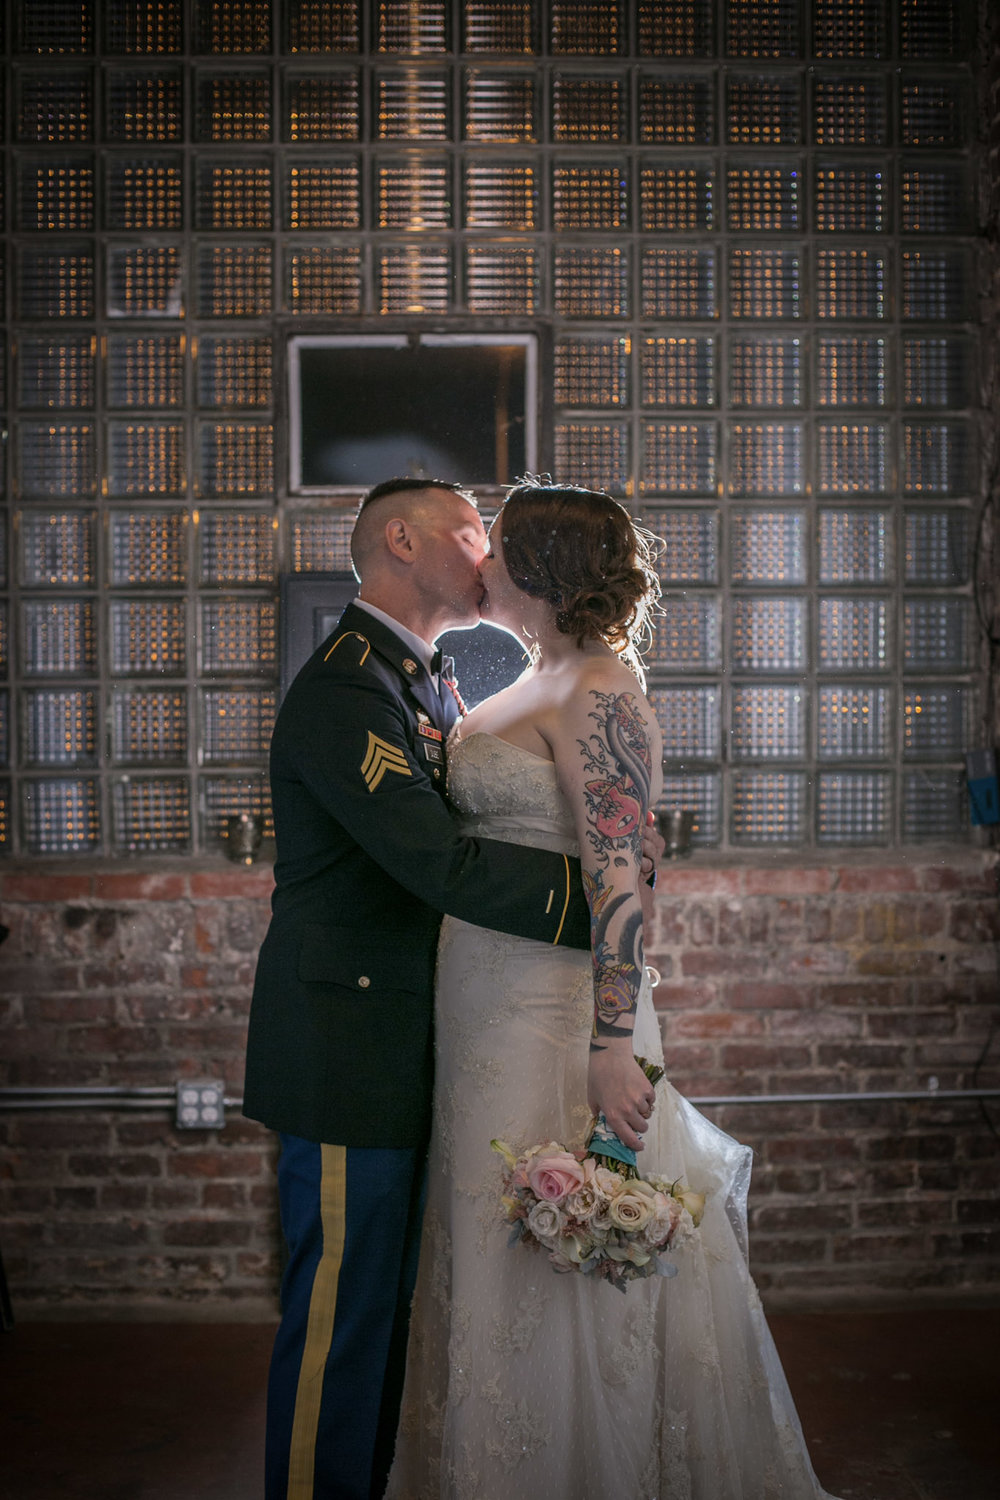 Kansas_City_Small_Wedding_Venue_Elope_Intimate_Ceremony_Budget_Affordable_Andrew&Sydney_287.jpg